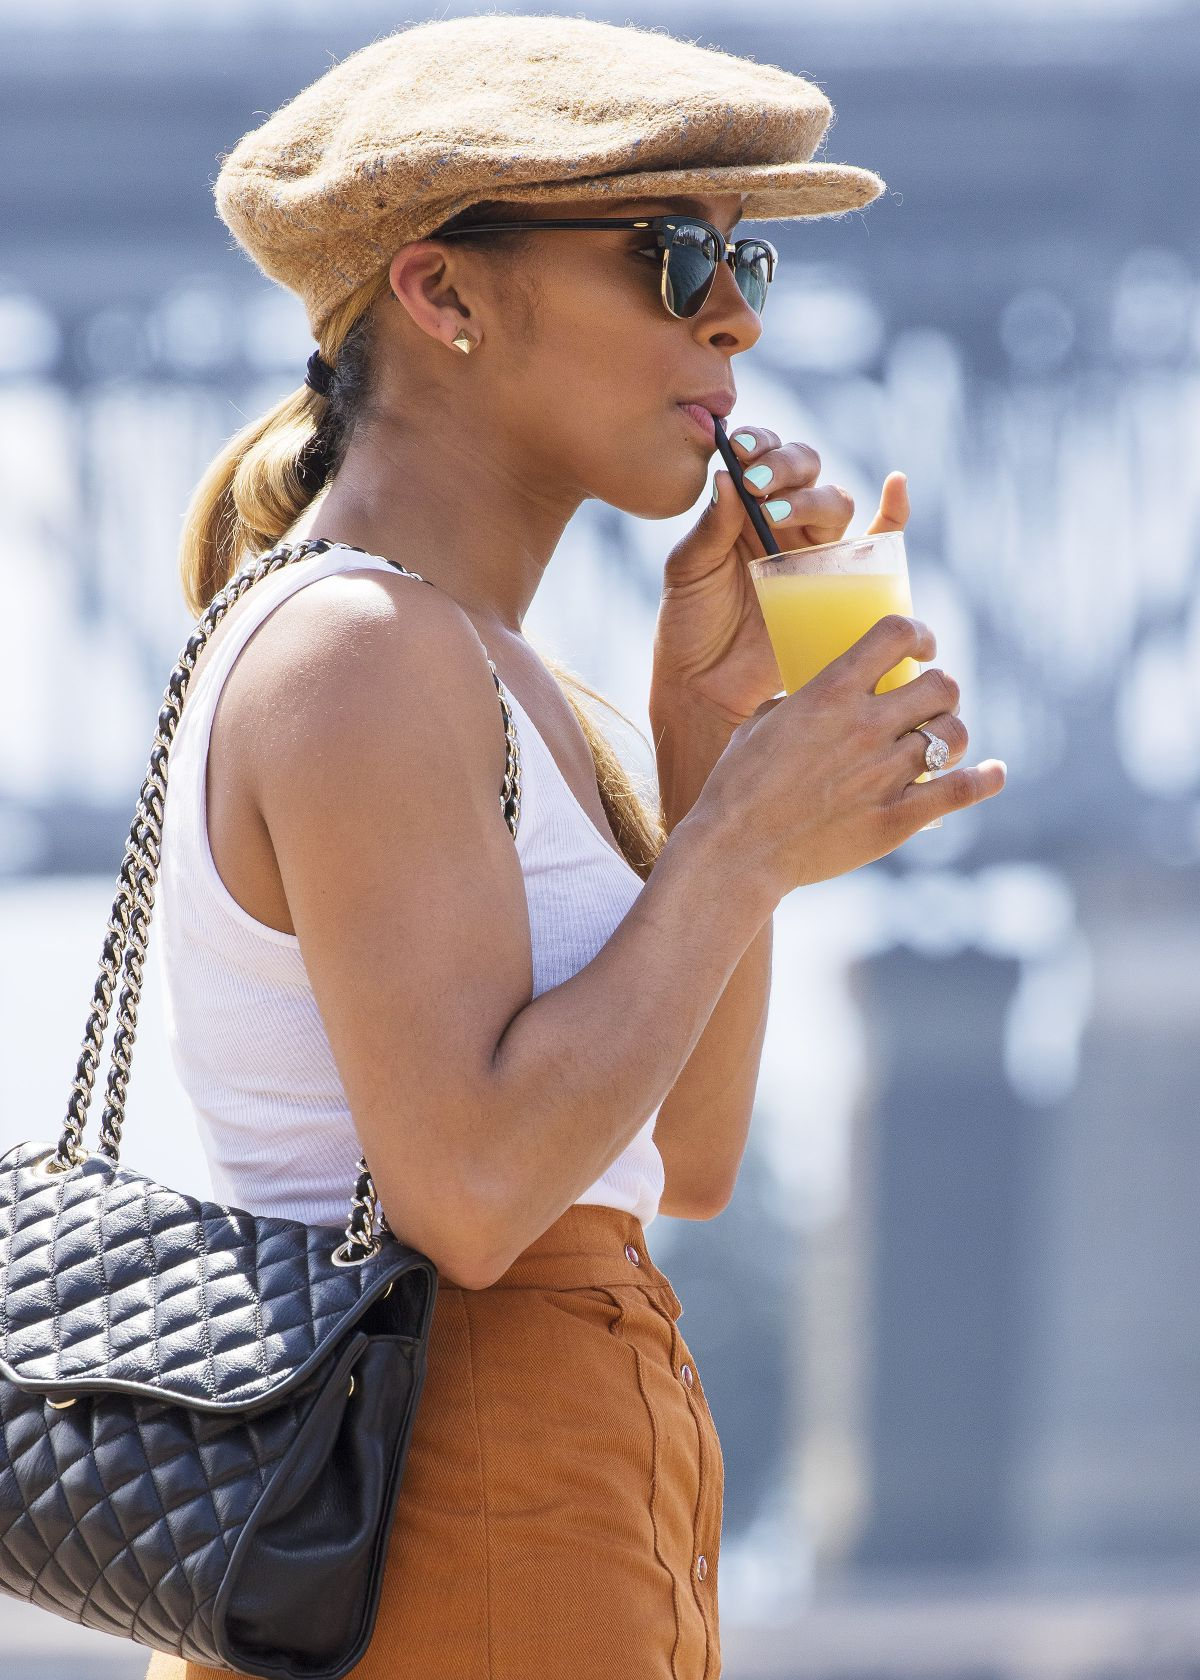 MELODY THORNTON at Opera Bay in Sydney Harbour 01/21/2016